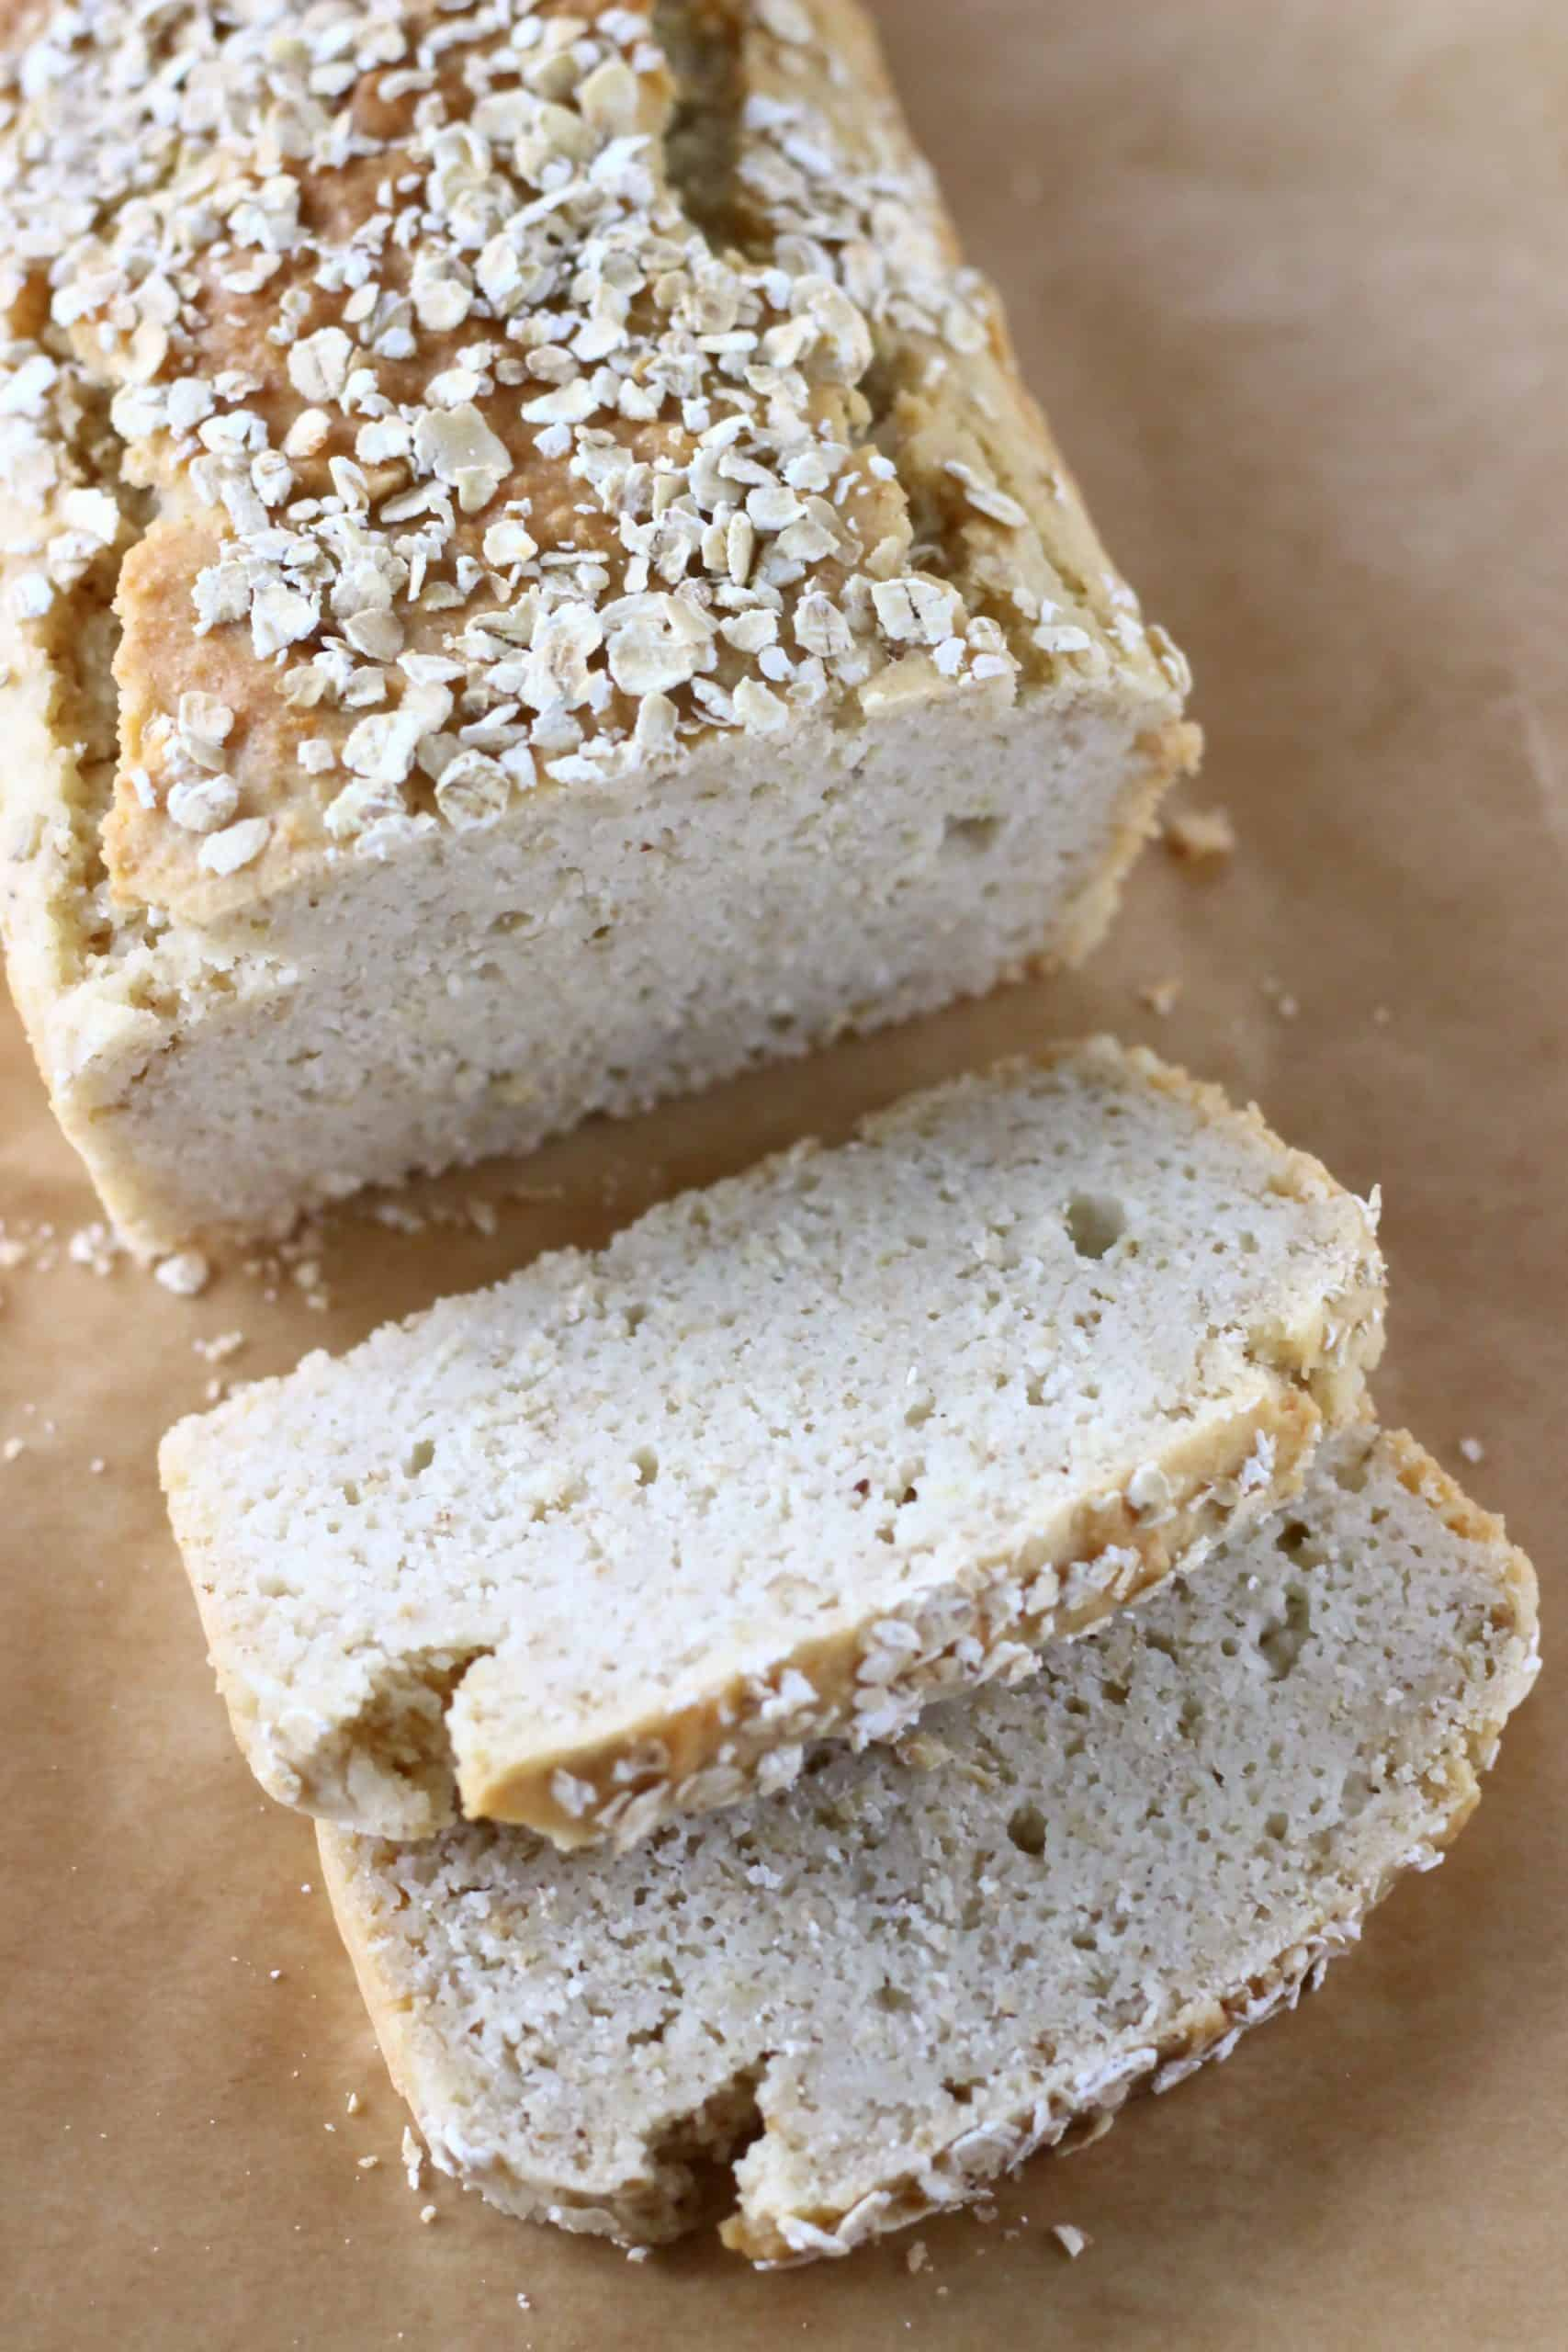 A loaf of brown bread topped with oats with two slices on the side against a sheet of brown baking paper